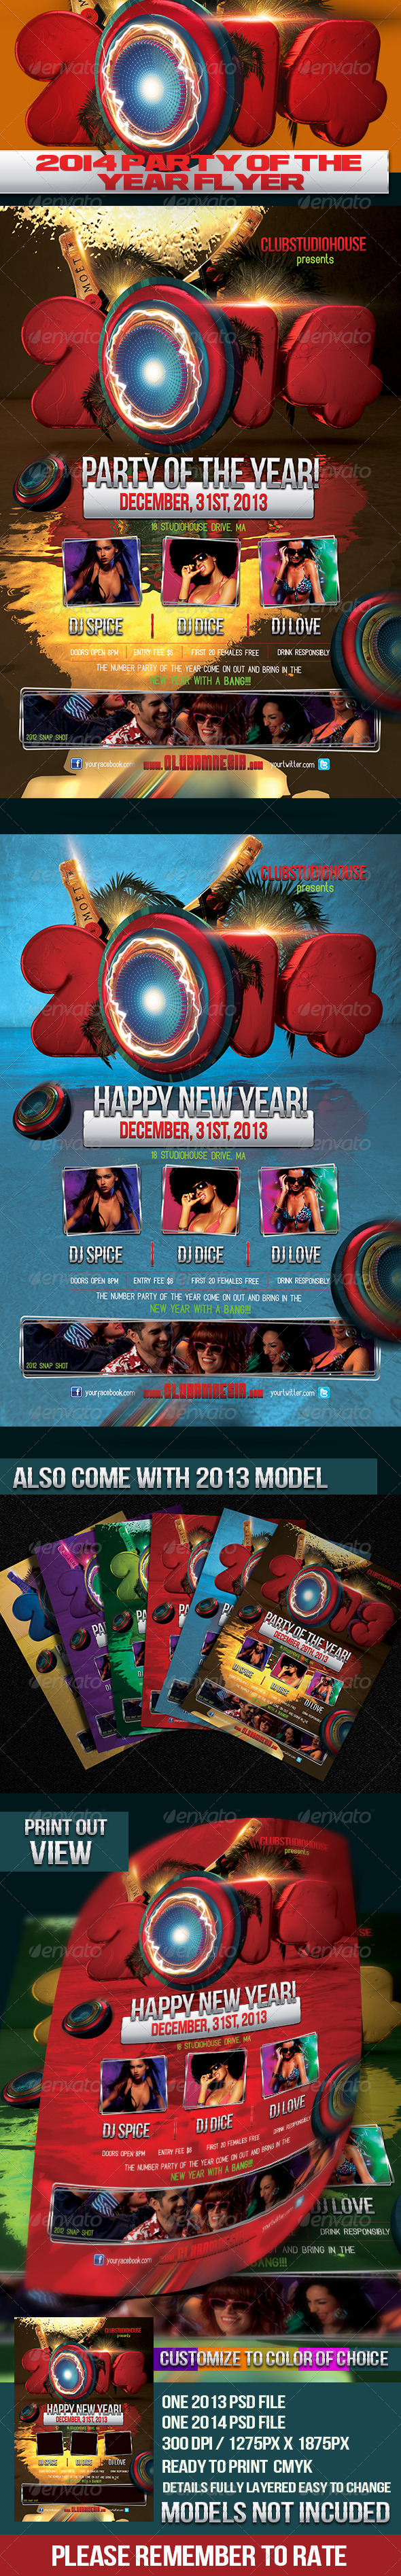 2014/2013 Party Of The Year Flyer Design - Holidays Events